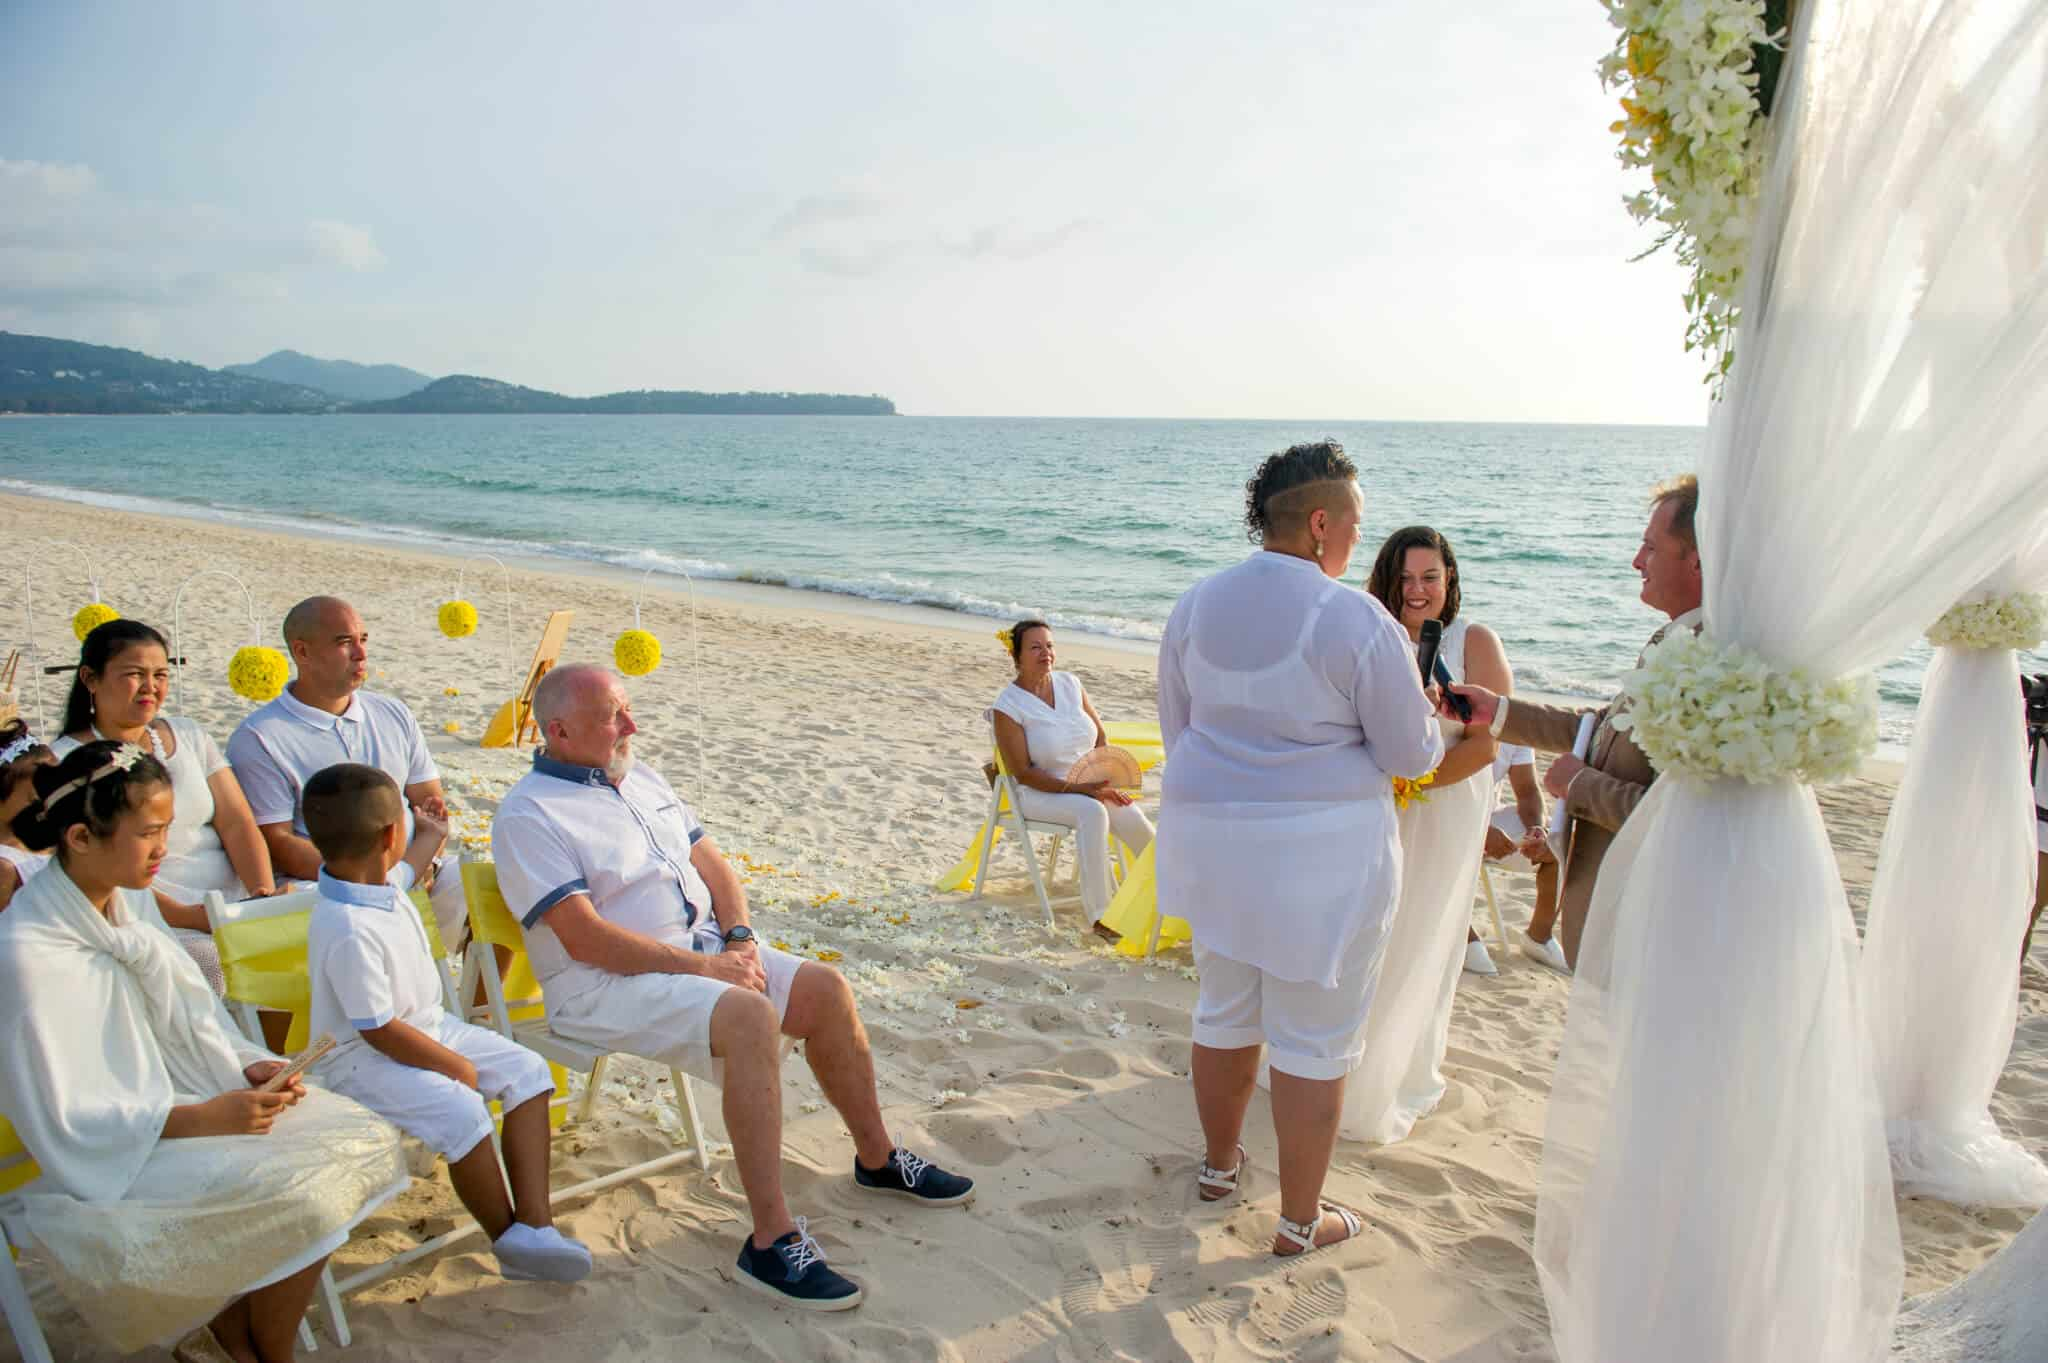 Phuket beach marriage celebrant (9)